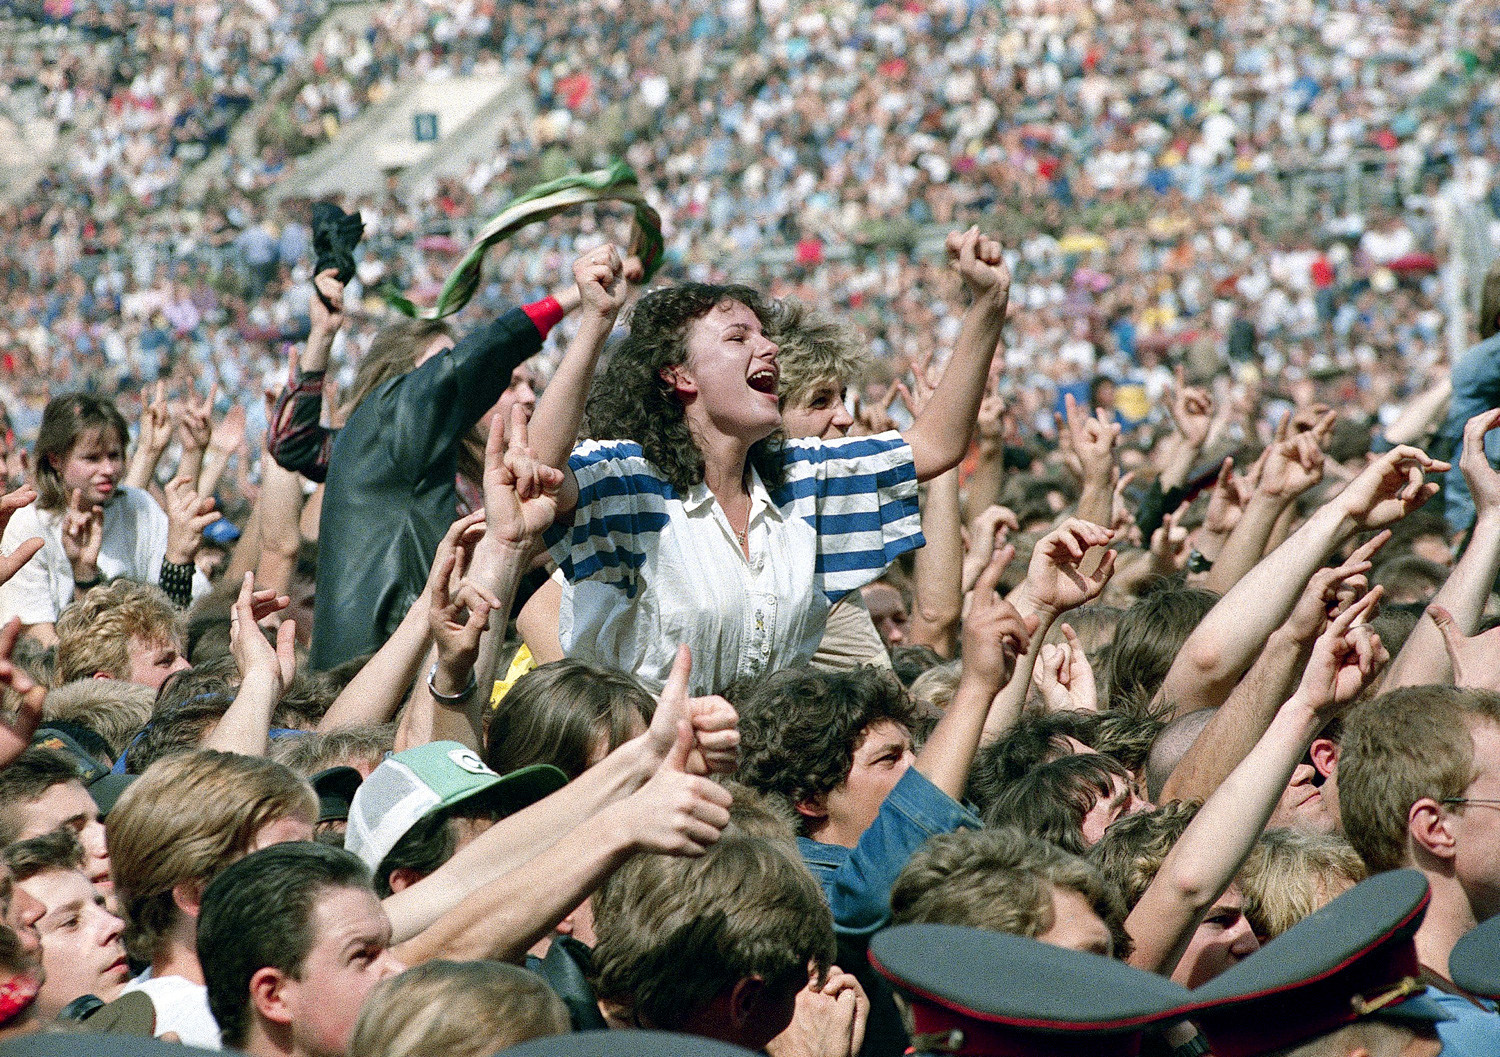 Western heavy metal rock bands including Bon Jovi, Motley Crue, Scorpions and Cinderella were enthusiastically received by loving fans in Moscow on Saturday, August 12, 1989 at The Moscow Music Peace Festival